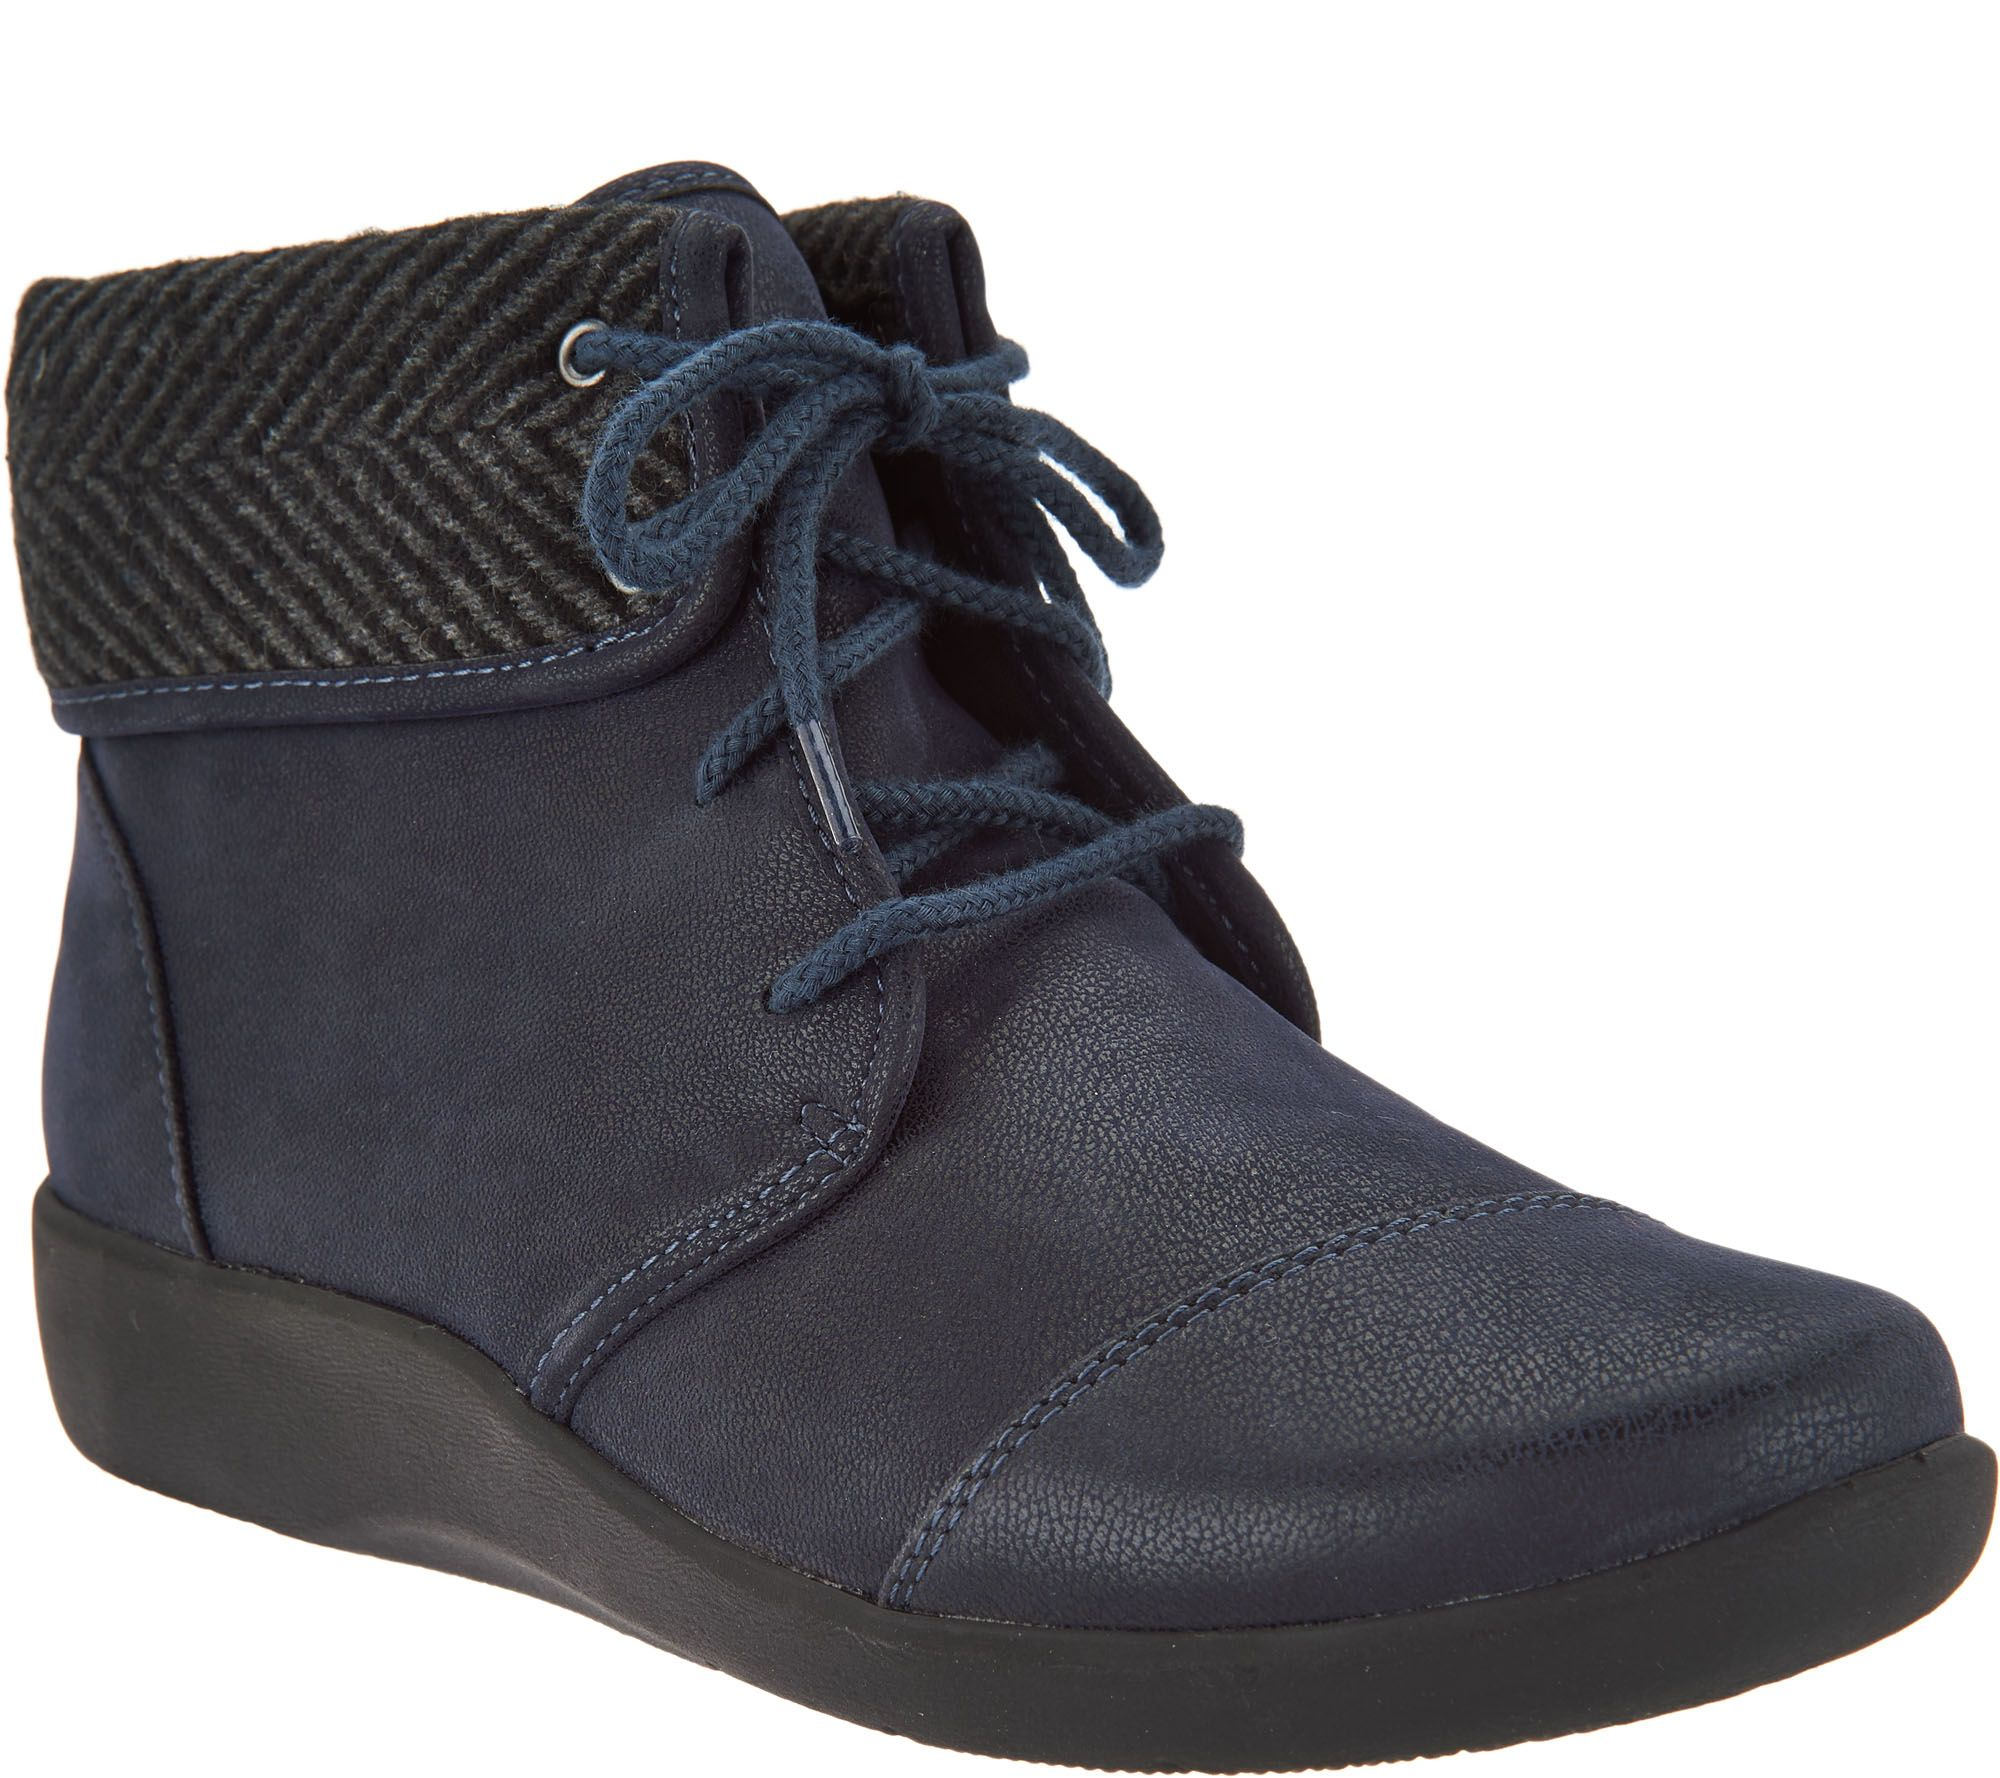 793b17f4d CLOUDSTEPPERS by Clarks Lace-up Ankle Boots - Sillian Frey - Page 1 —  QVC.com